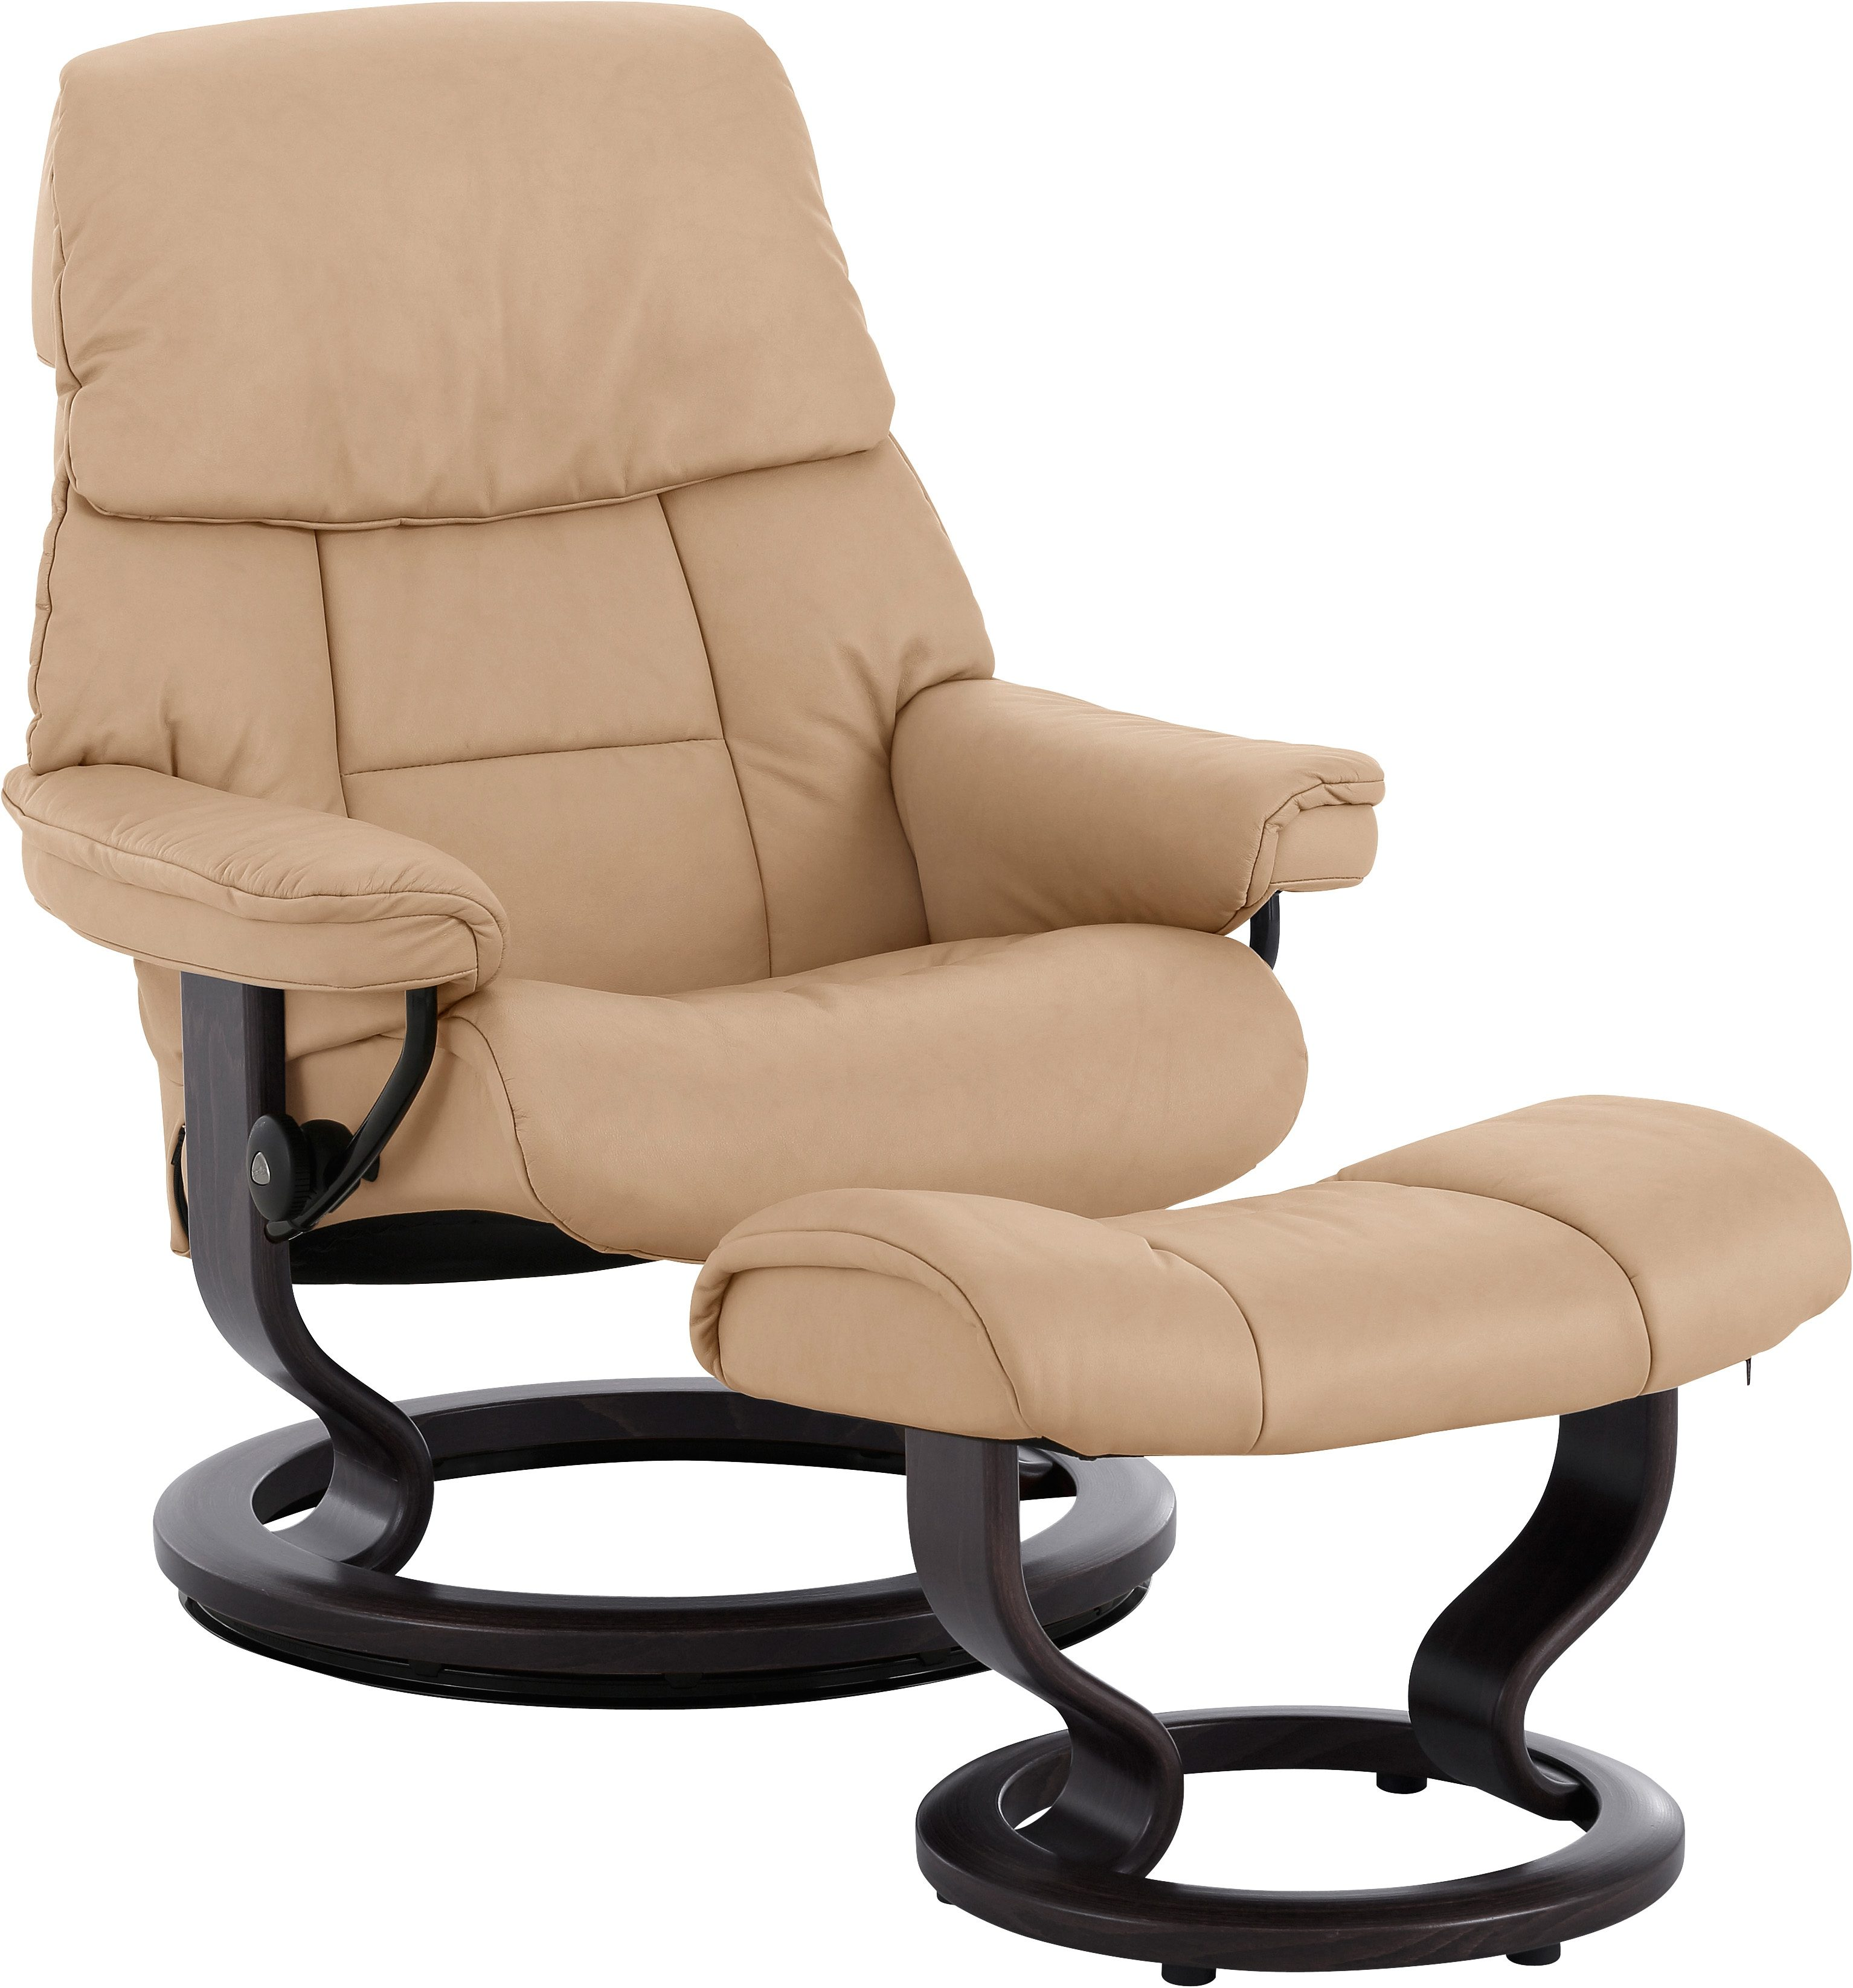 Stressless Sessel Inkl. Hocker Modell Sunrise (m) Classic Stressless Atlantic Sessel Mit Hocker